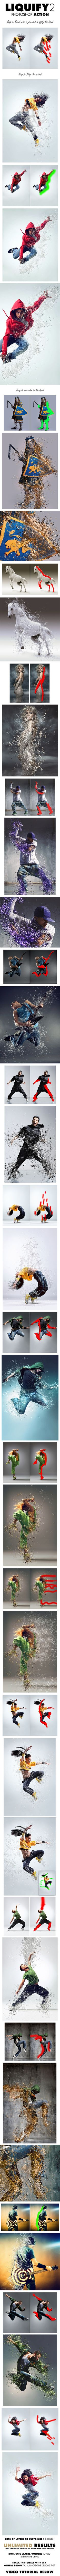 Liquify 2 Photoshop Action #design #photoeffect Download: http://graphicriver.net/item/liquify-2-photoshop-action/10307102?ref=ksioks